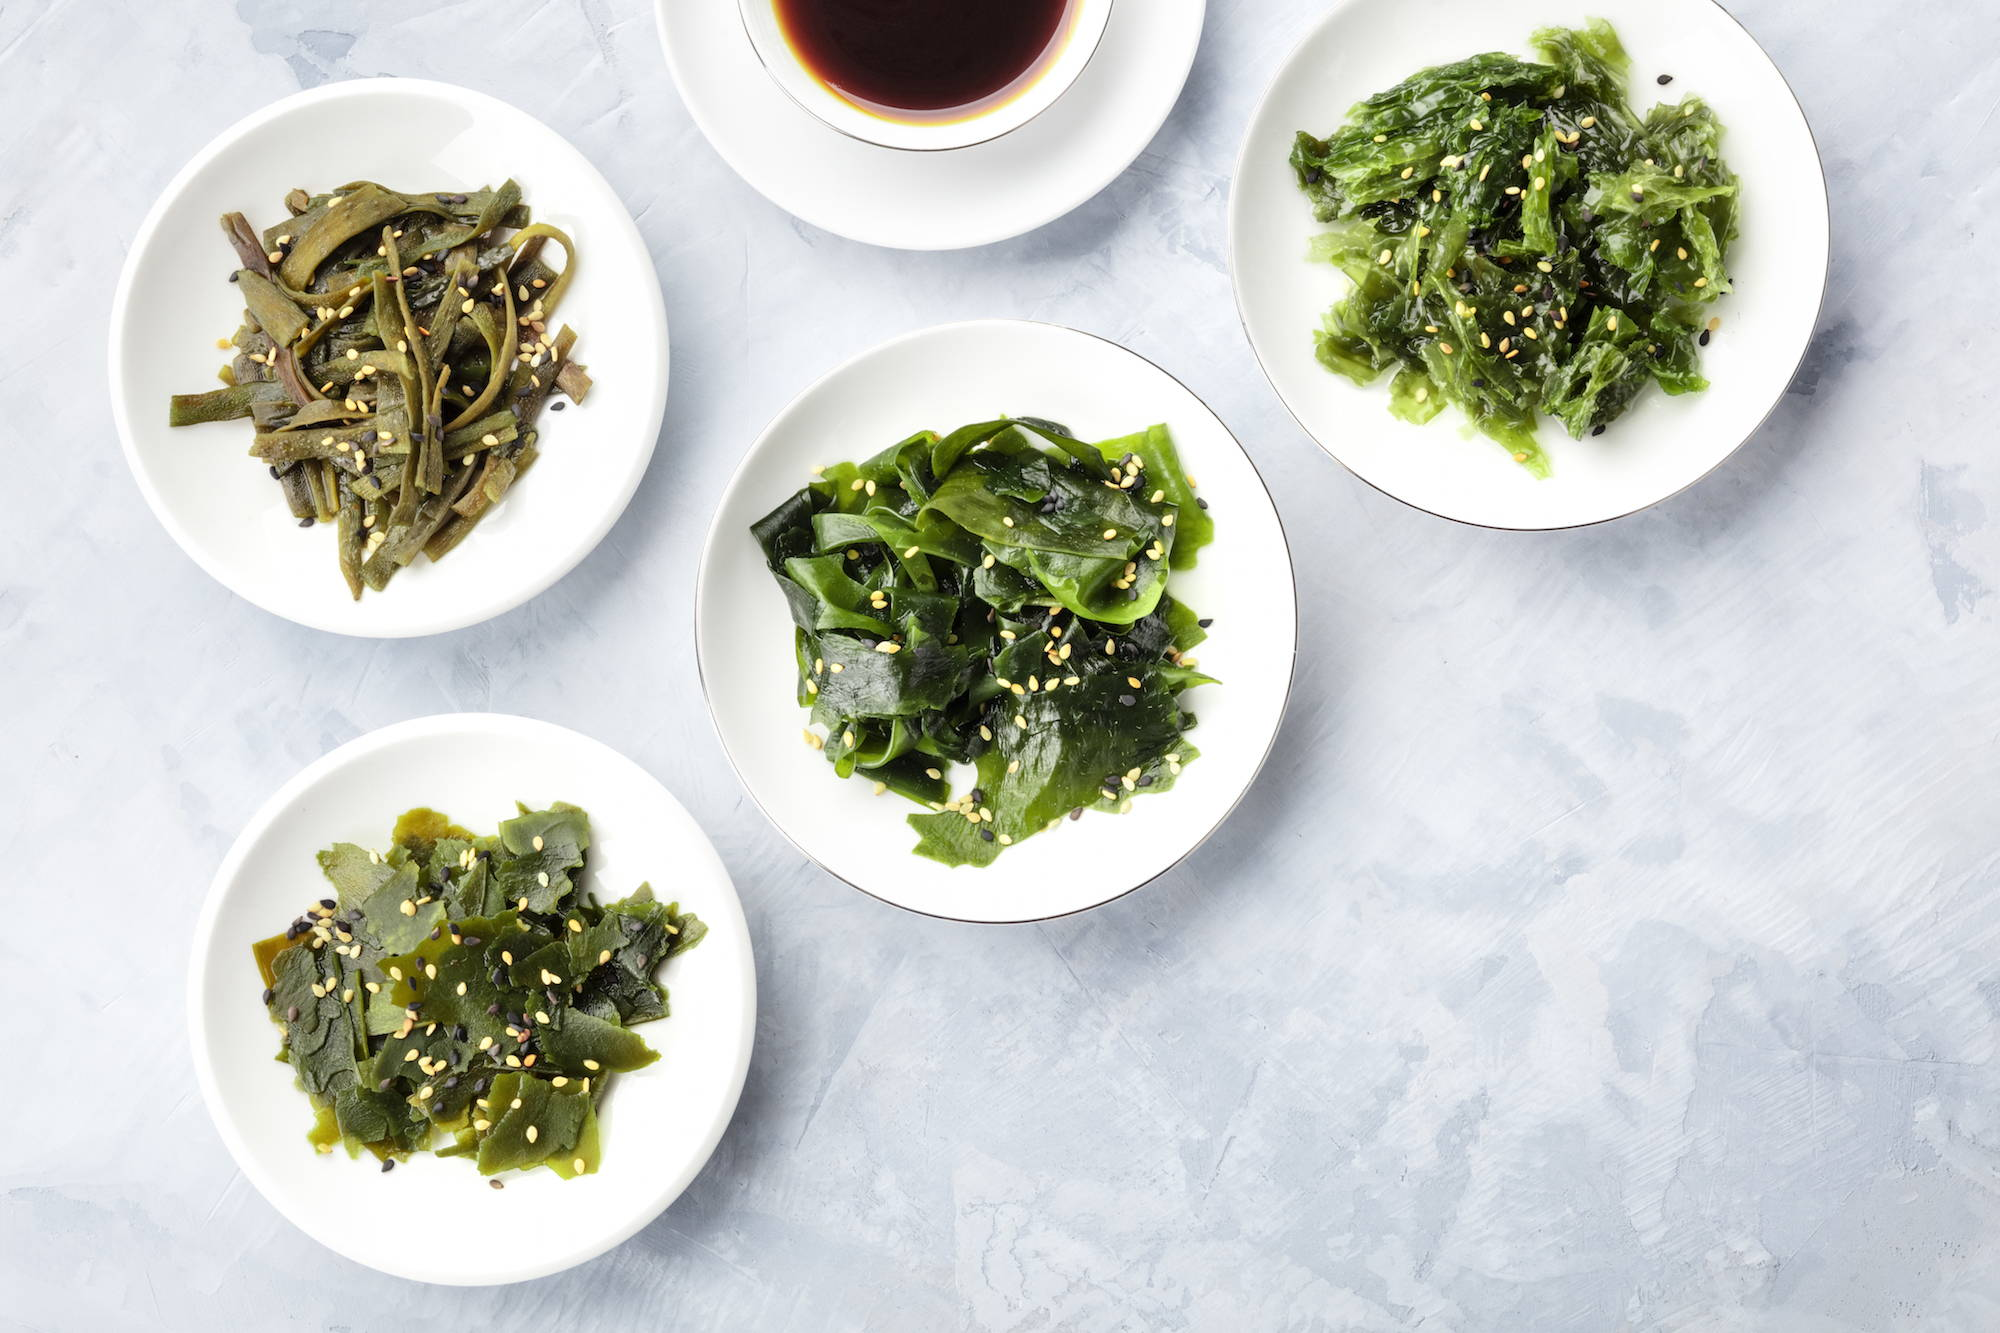 iodine, found in seaweed, supports an underactive thyroid